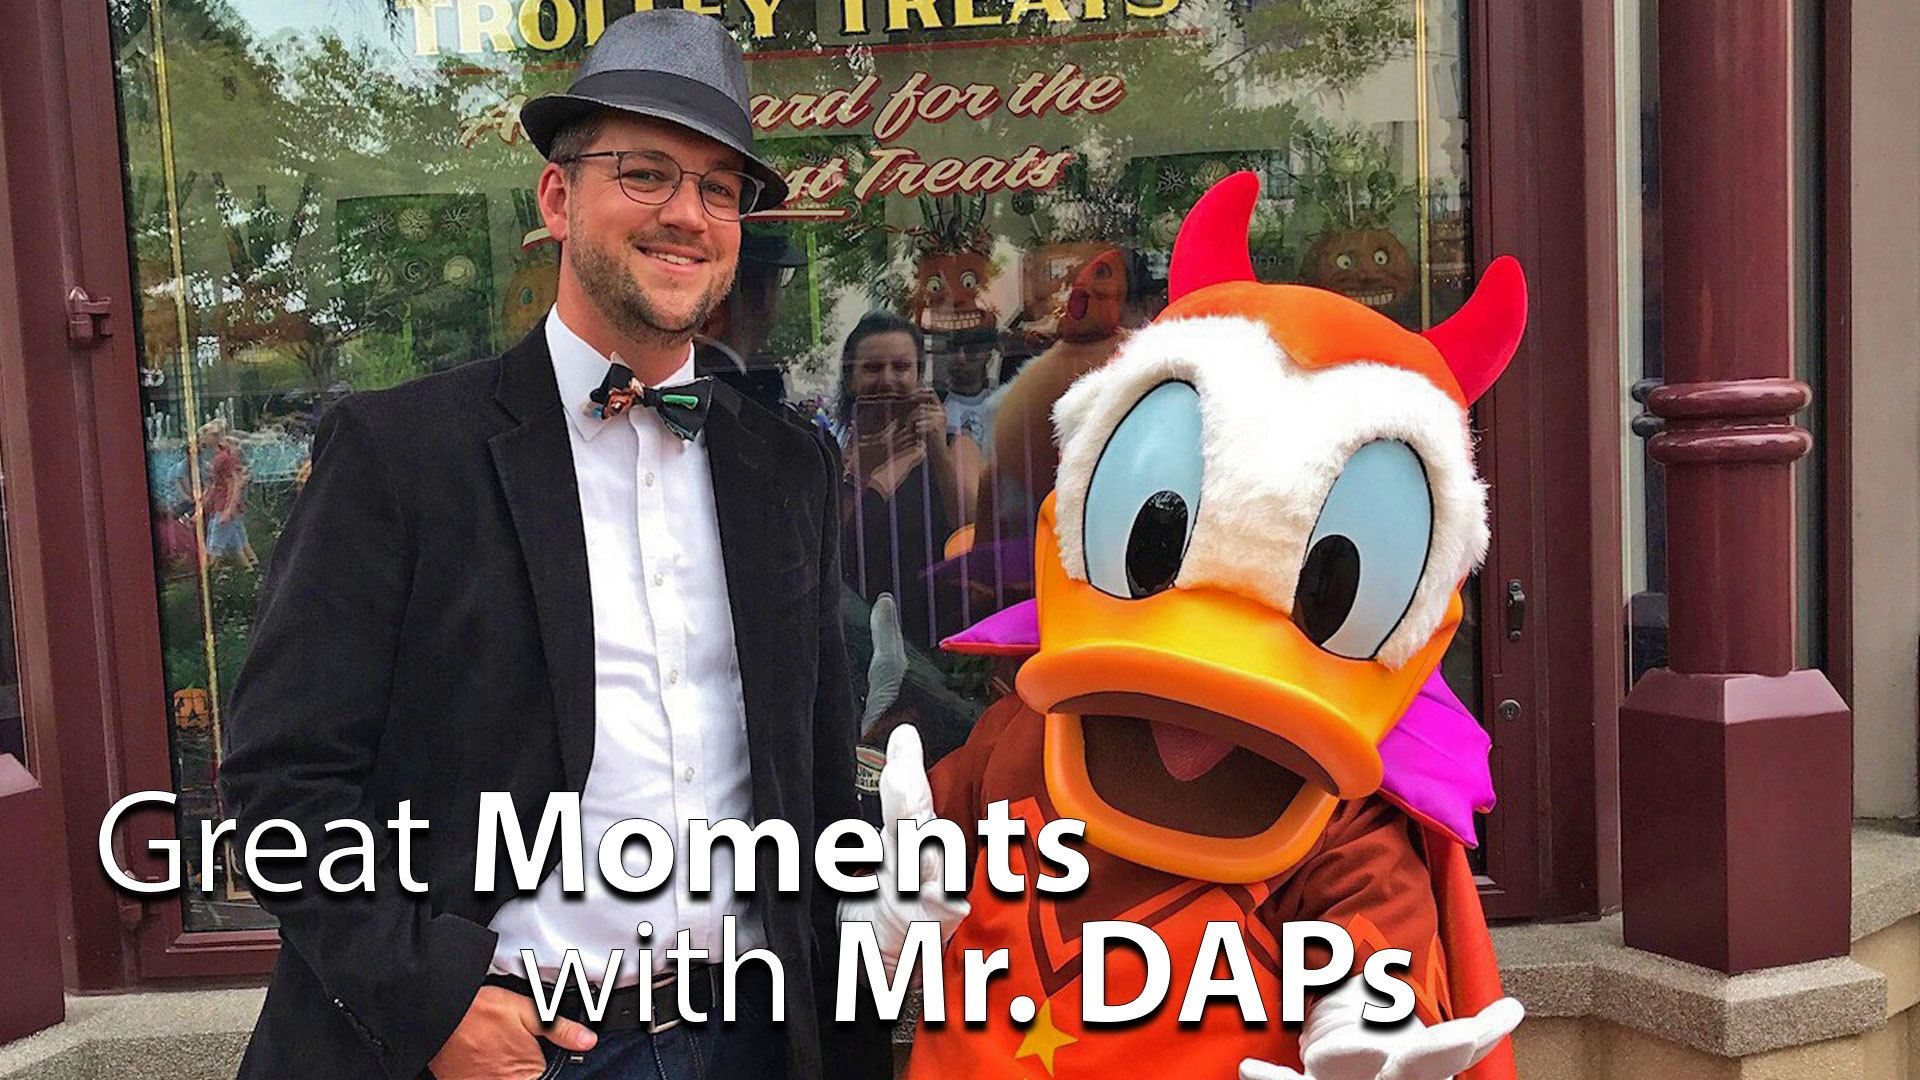 SCAREolers, EPCOT, THOR, and more! - Great Moments with Mr. DAPs